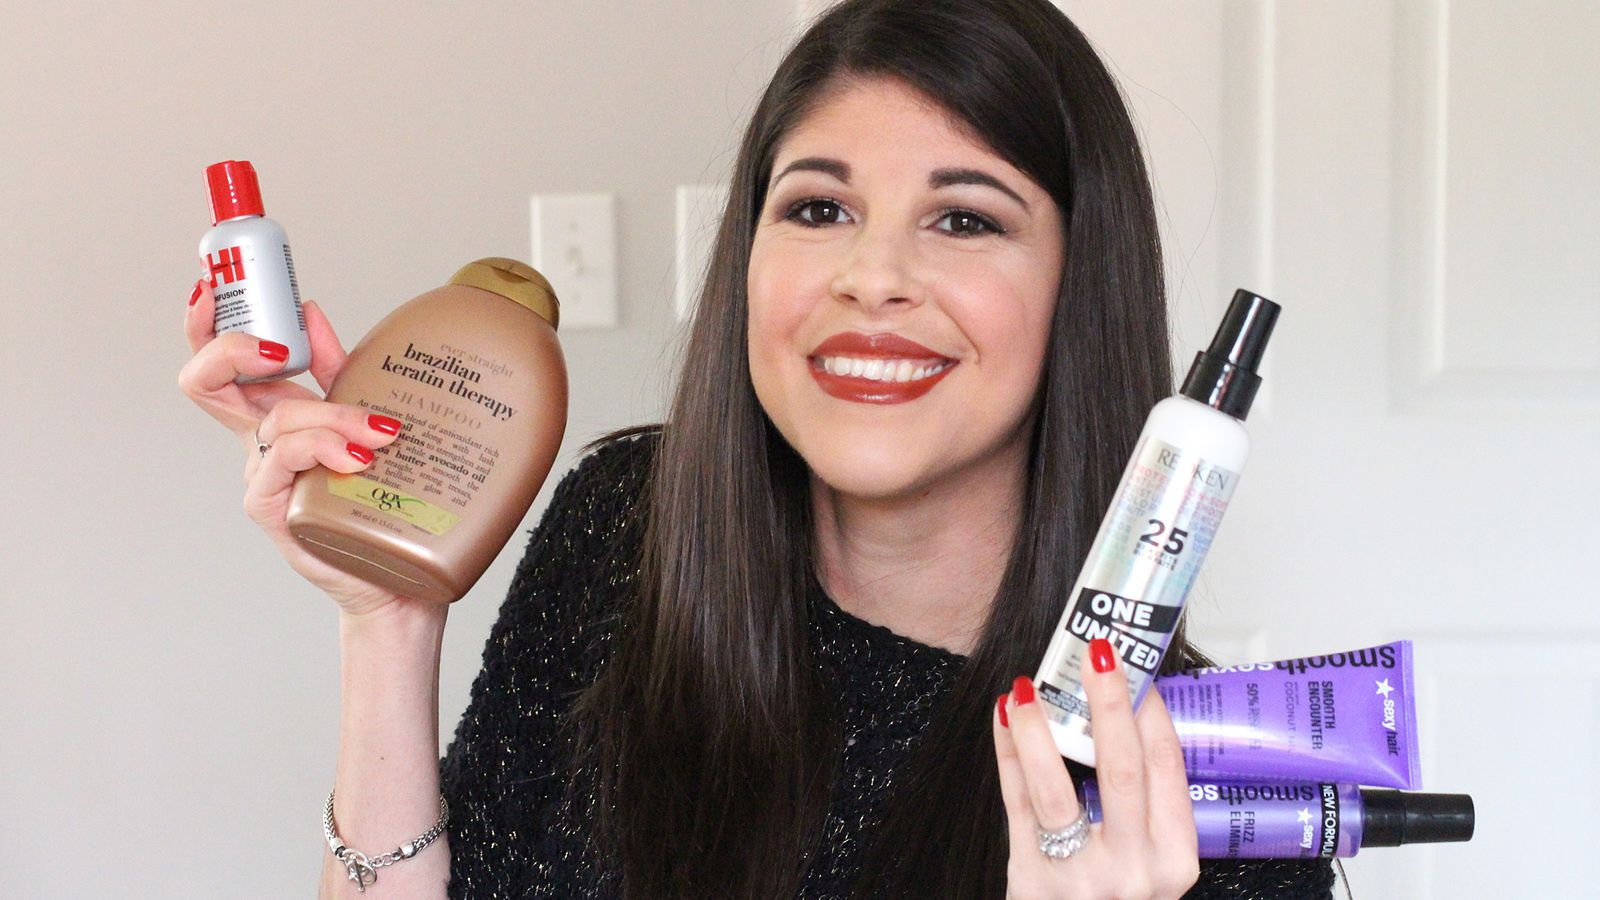 Holy Grail HAIR PRODUCTS! 2015